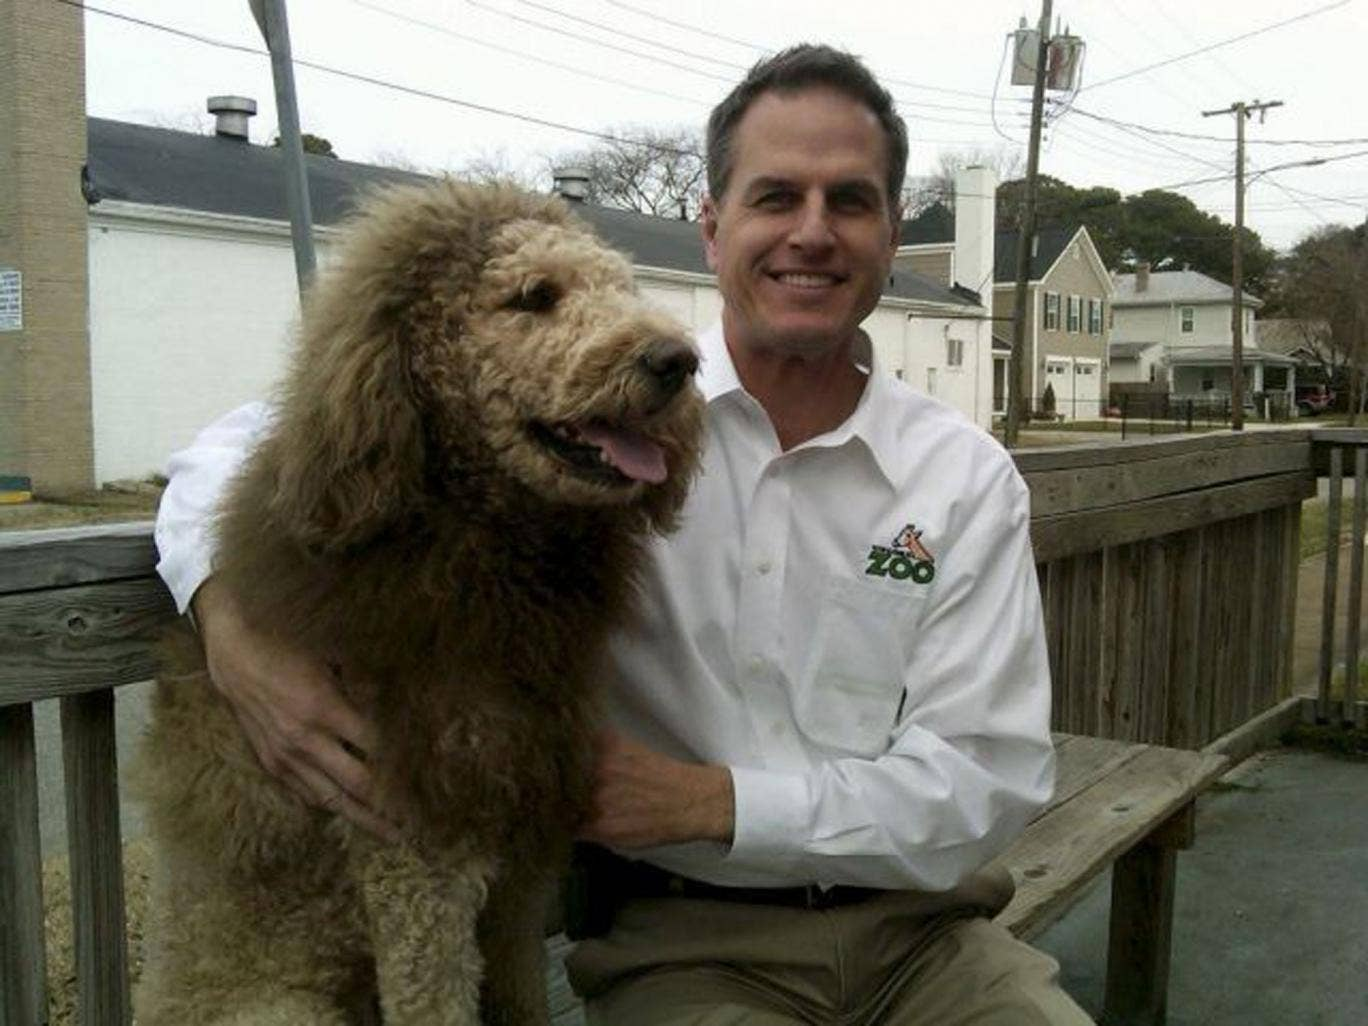 Virginia zoo's executive director Greg Brockheim with Charles the Monarch, a Labradoodle with a cut resembling the shaggy mane and tawny coat of a Lion